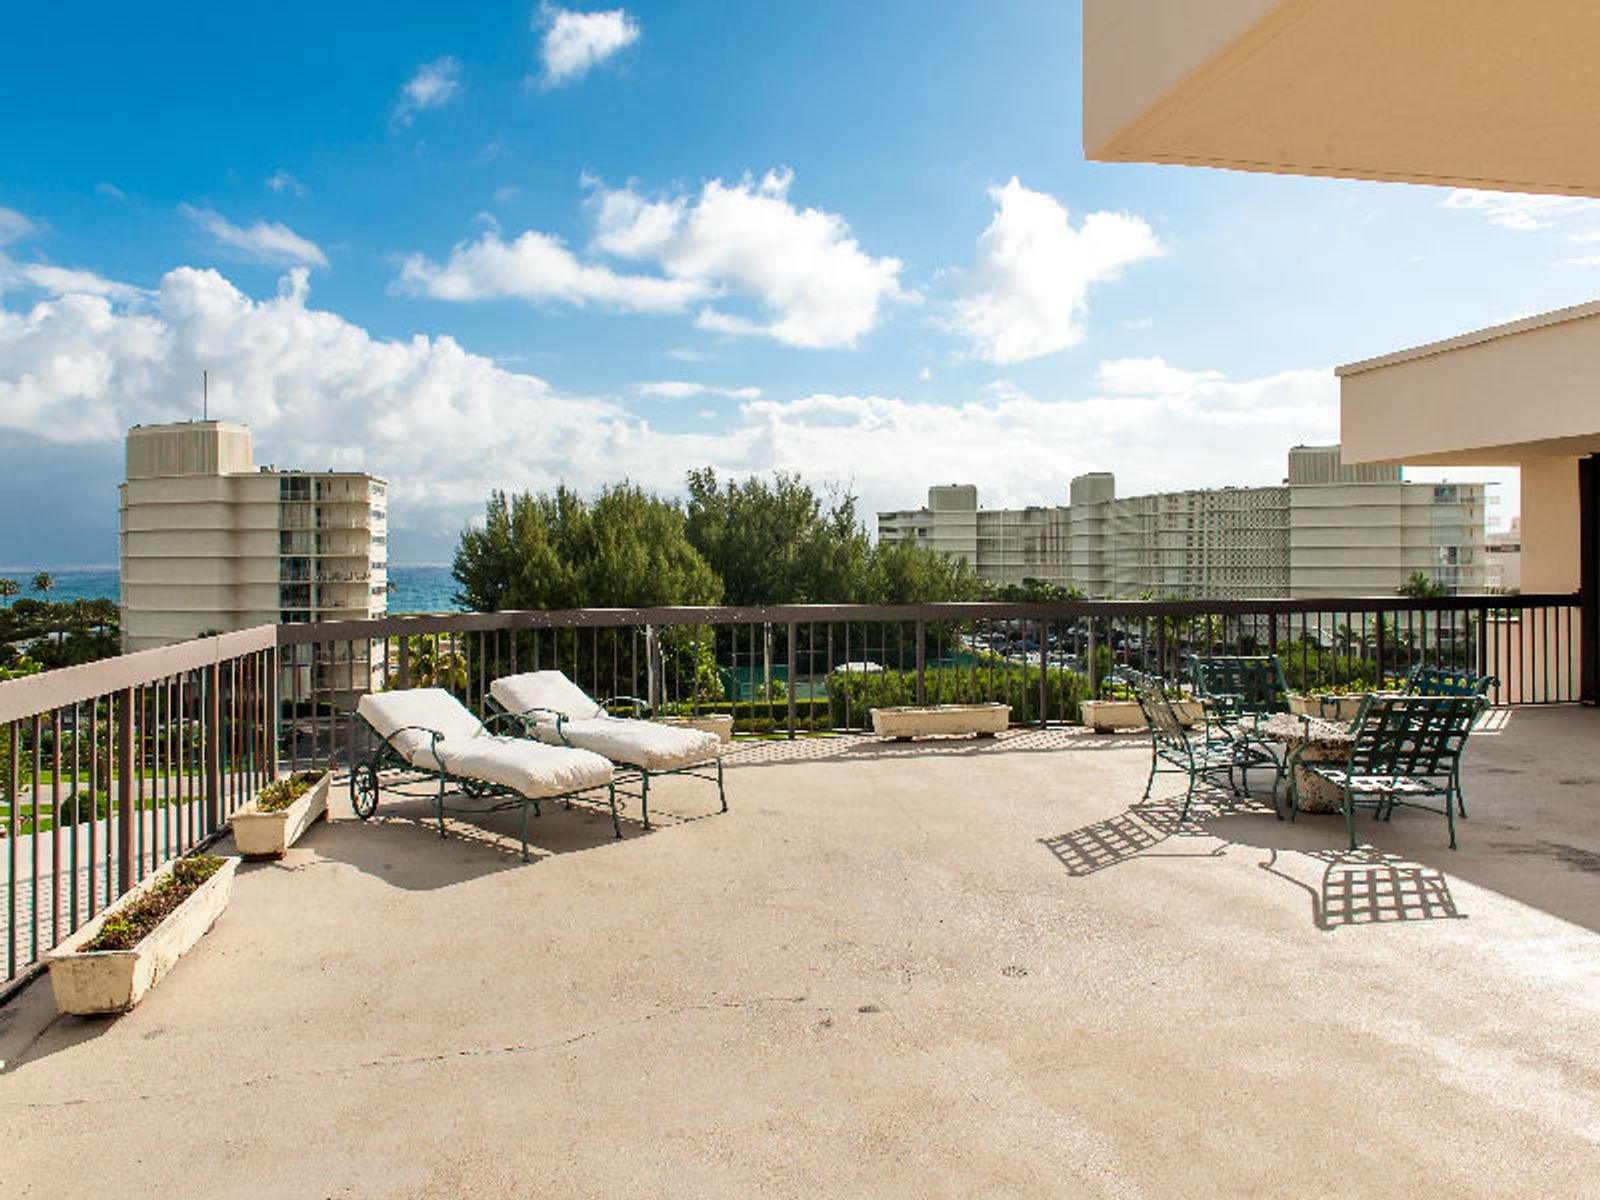 Penthouse with Water Views, Palm Beach FL Condominium - Palm Beach Real Estate